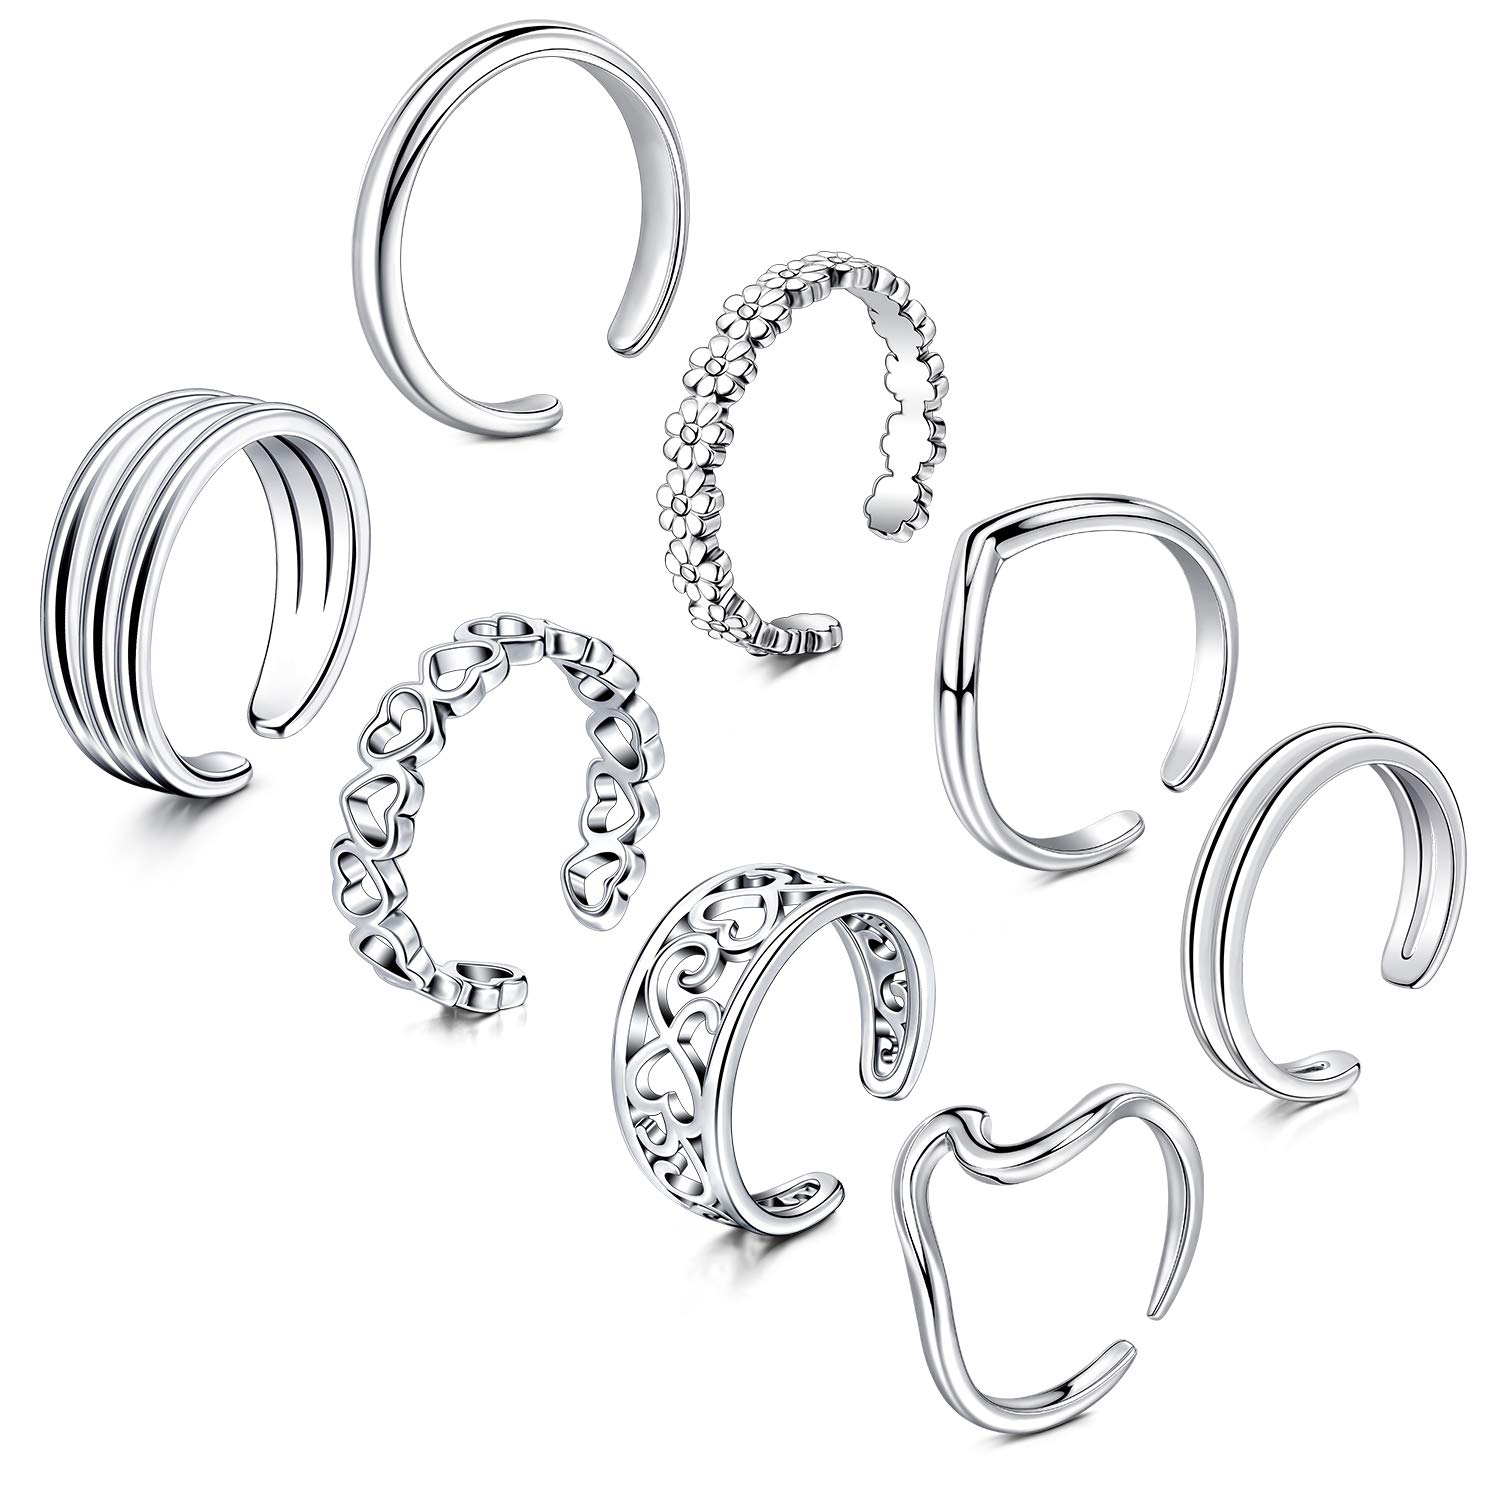 Anicina Open Toe Ring for Women Girls Various Types Band Ring Set Foot Jewelry Cute Tail Ring Summer Beach Adjustable Toe Finger Rings